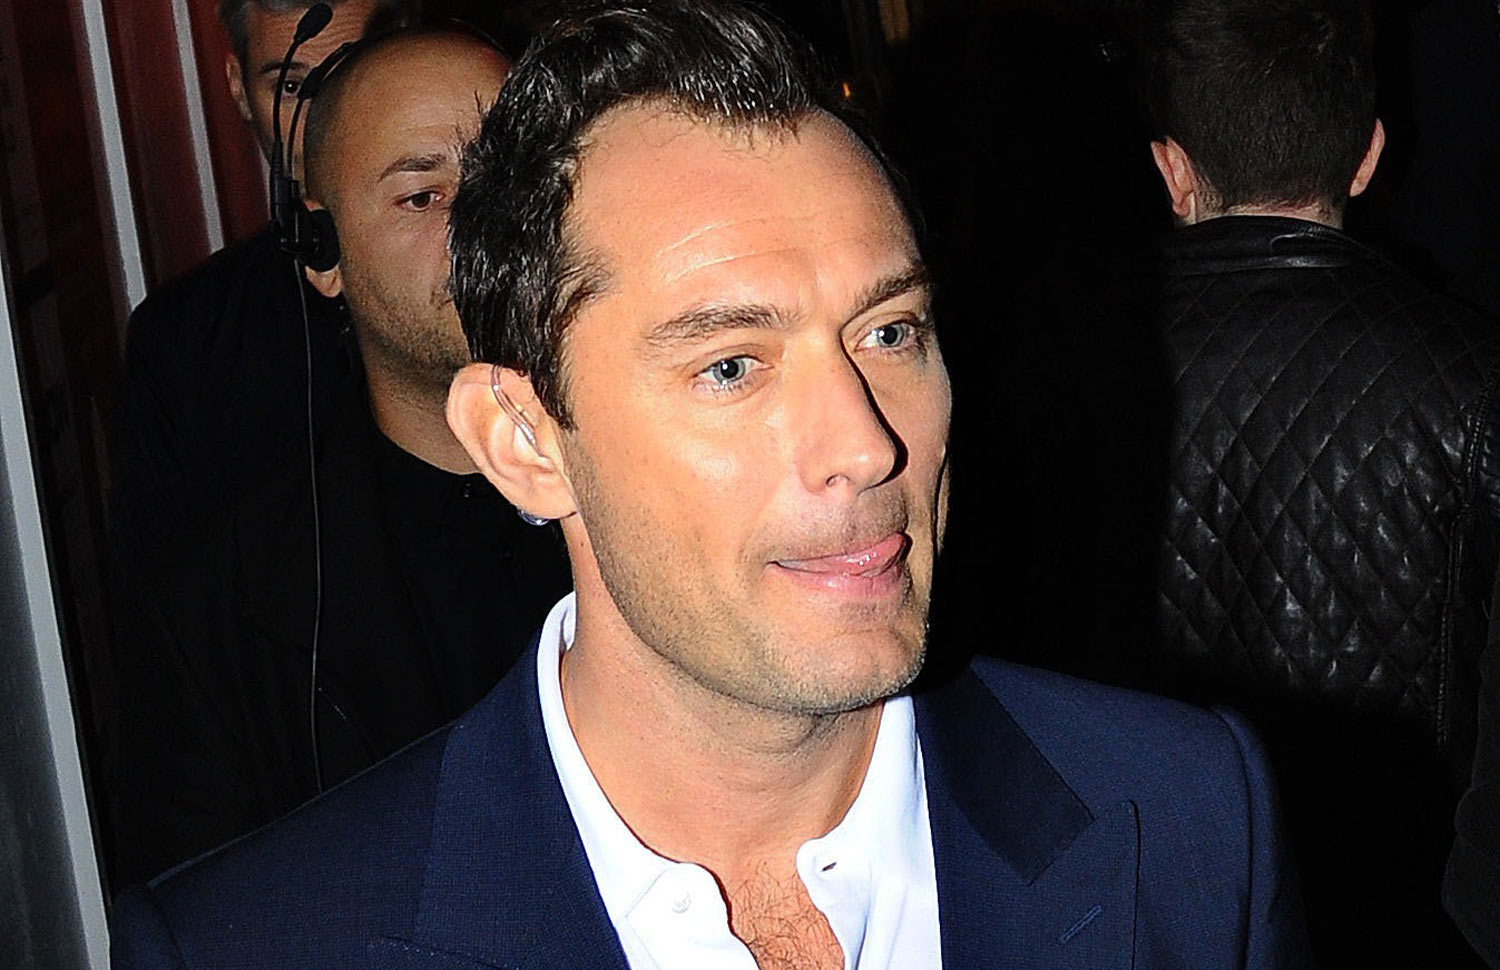 Jude Law Keeps Things Cool While Hanging Out in London | Jude Law ... Jude Law